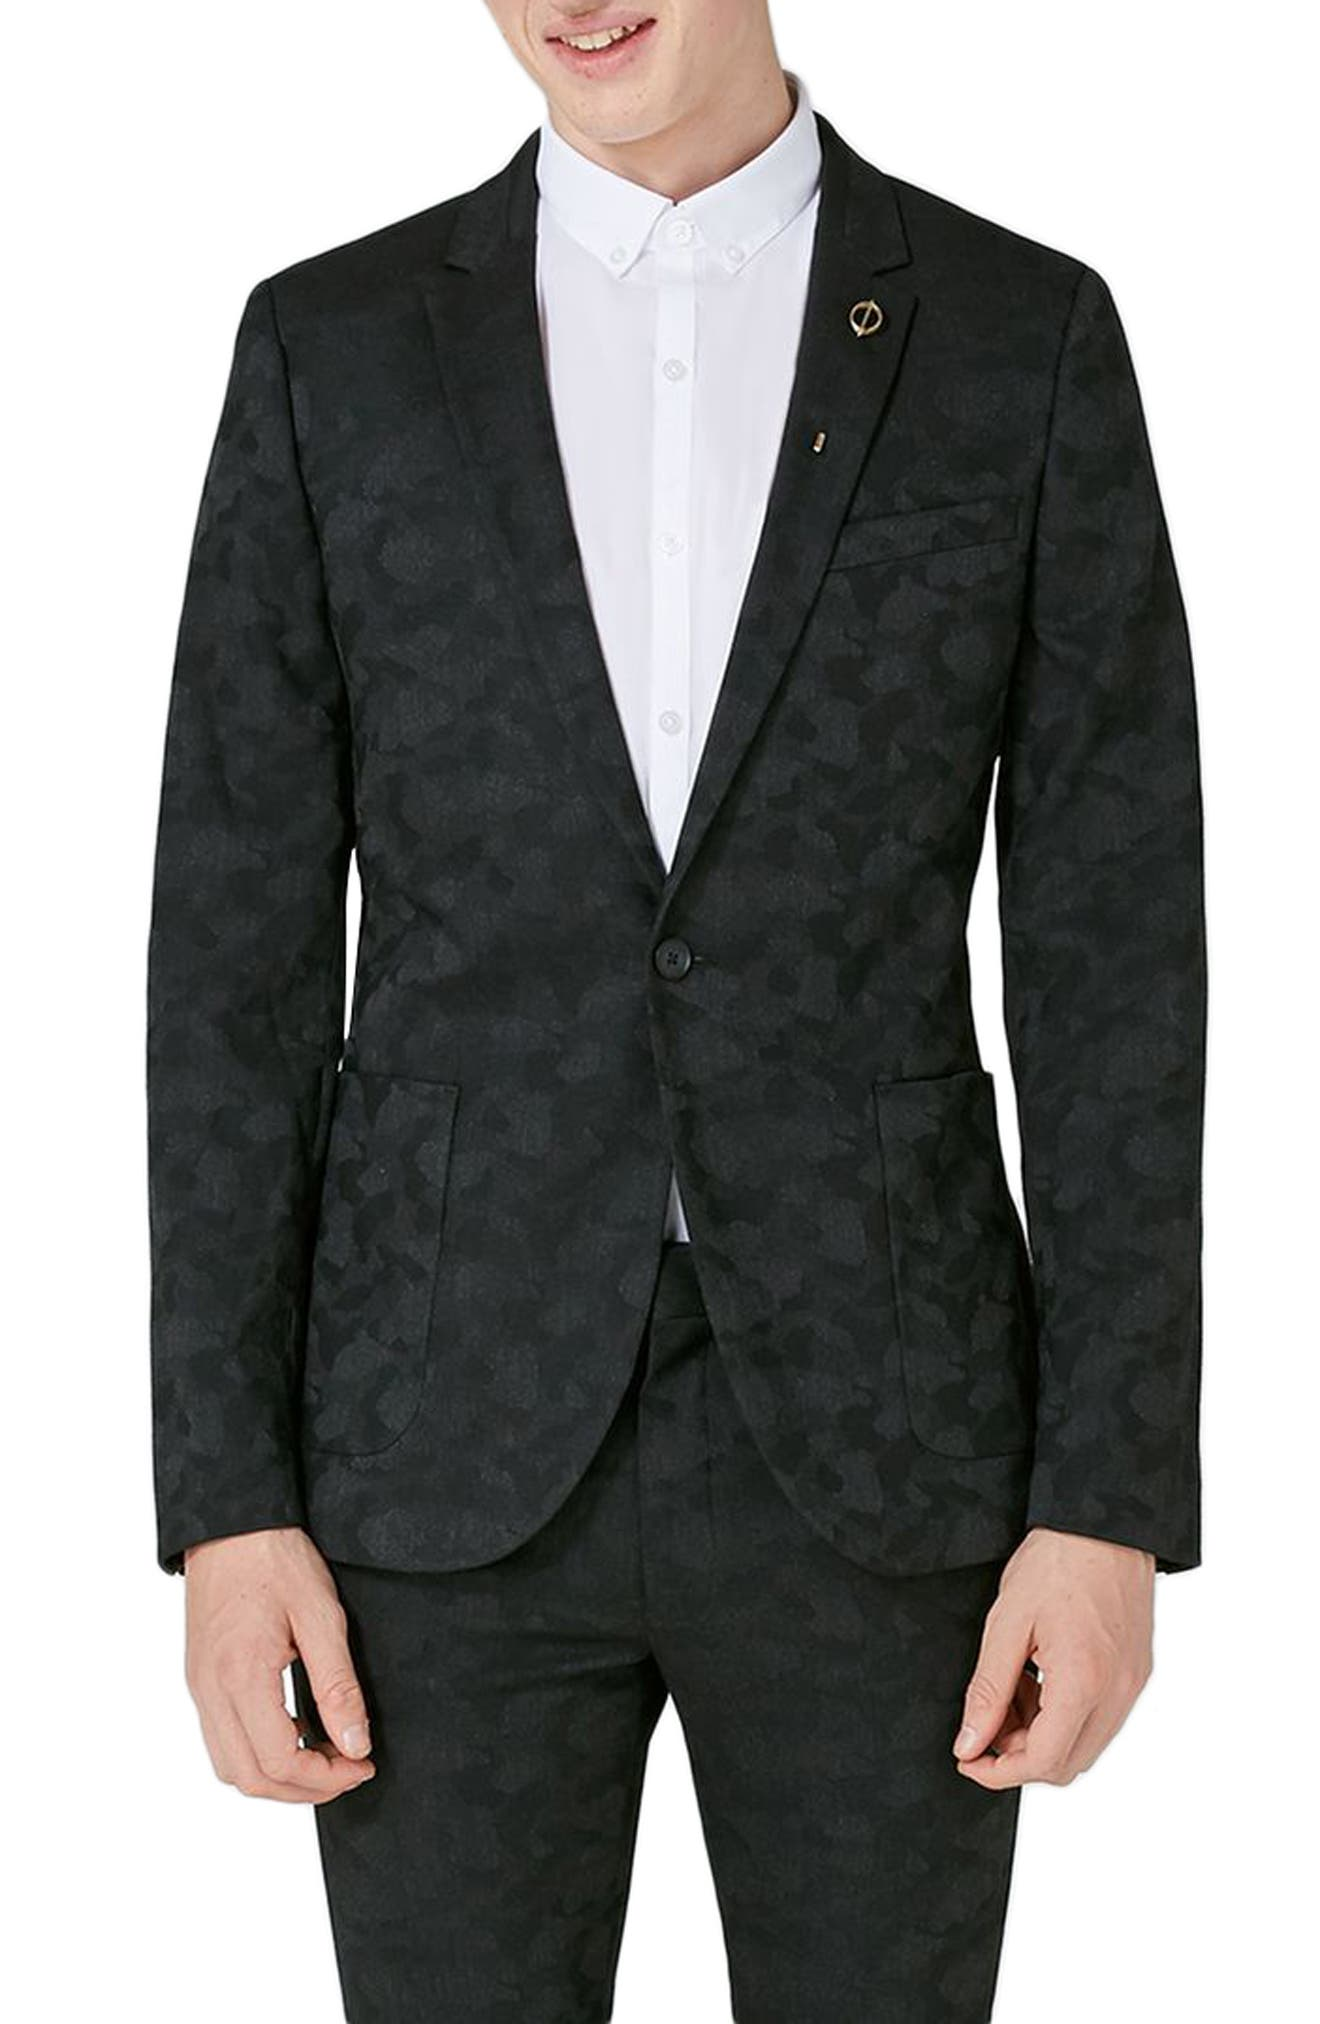 Shadow Camo Ultra Skinny Fit Suit Jacket,                             Main thumbnail 1, color,                             020